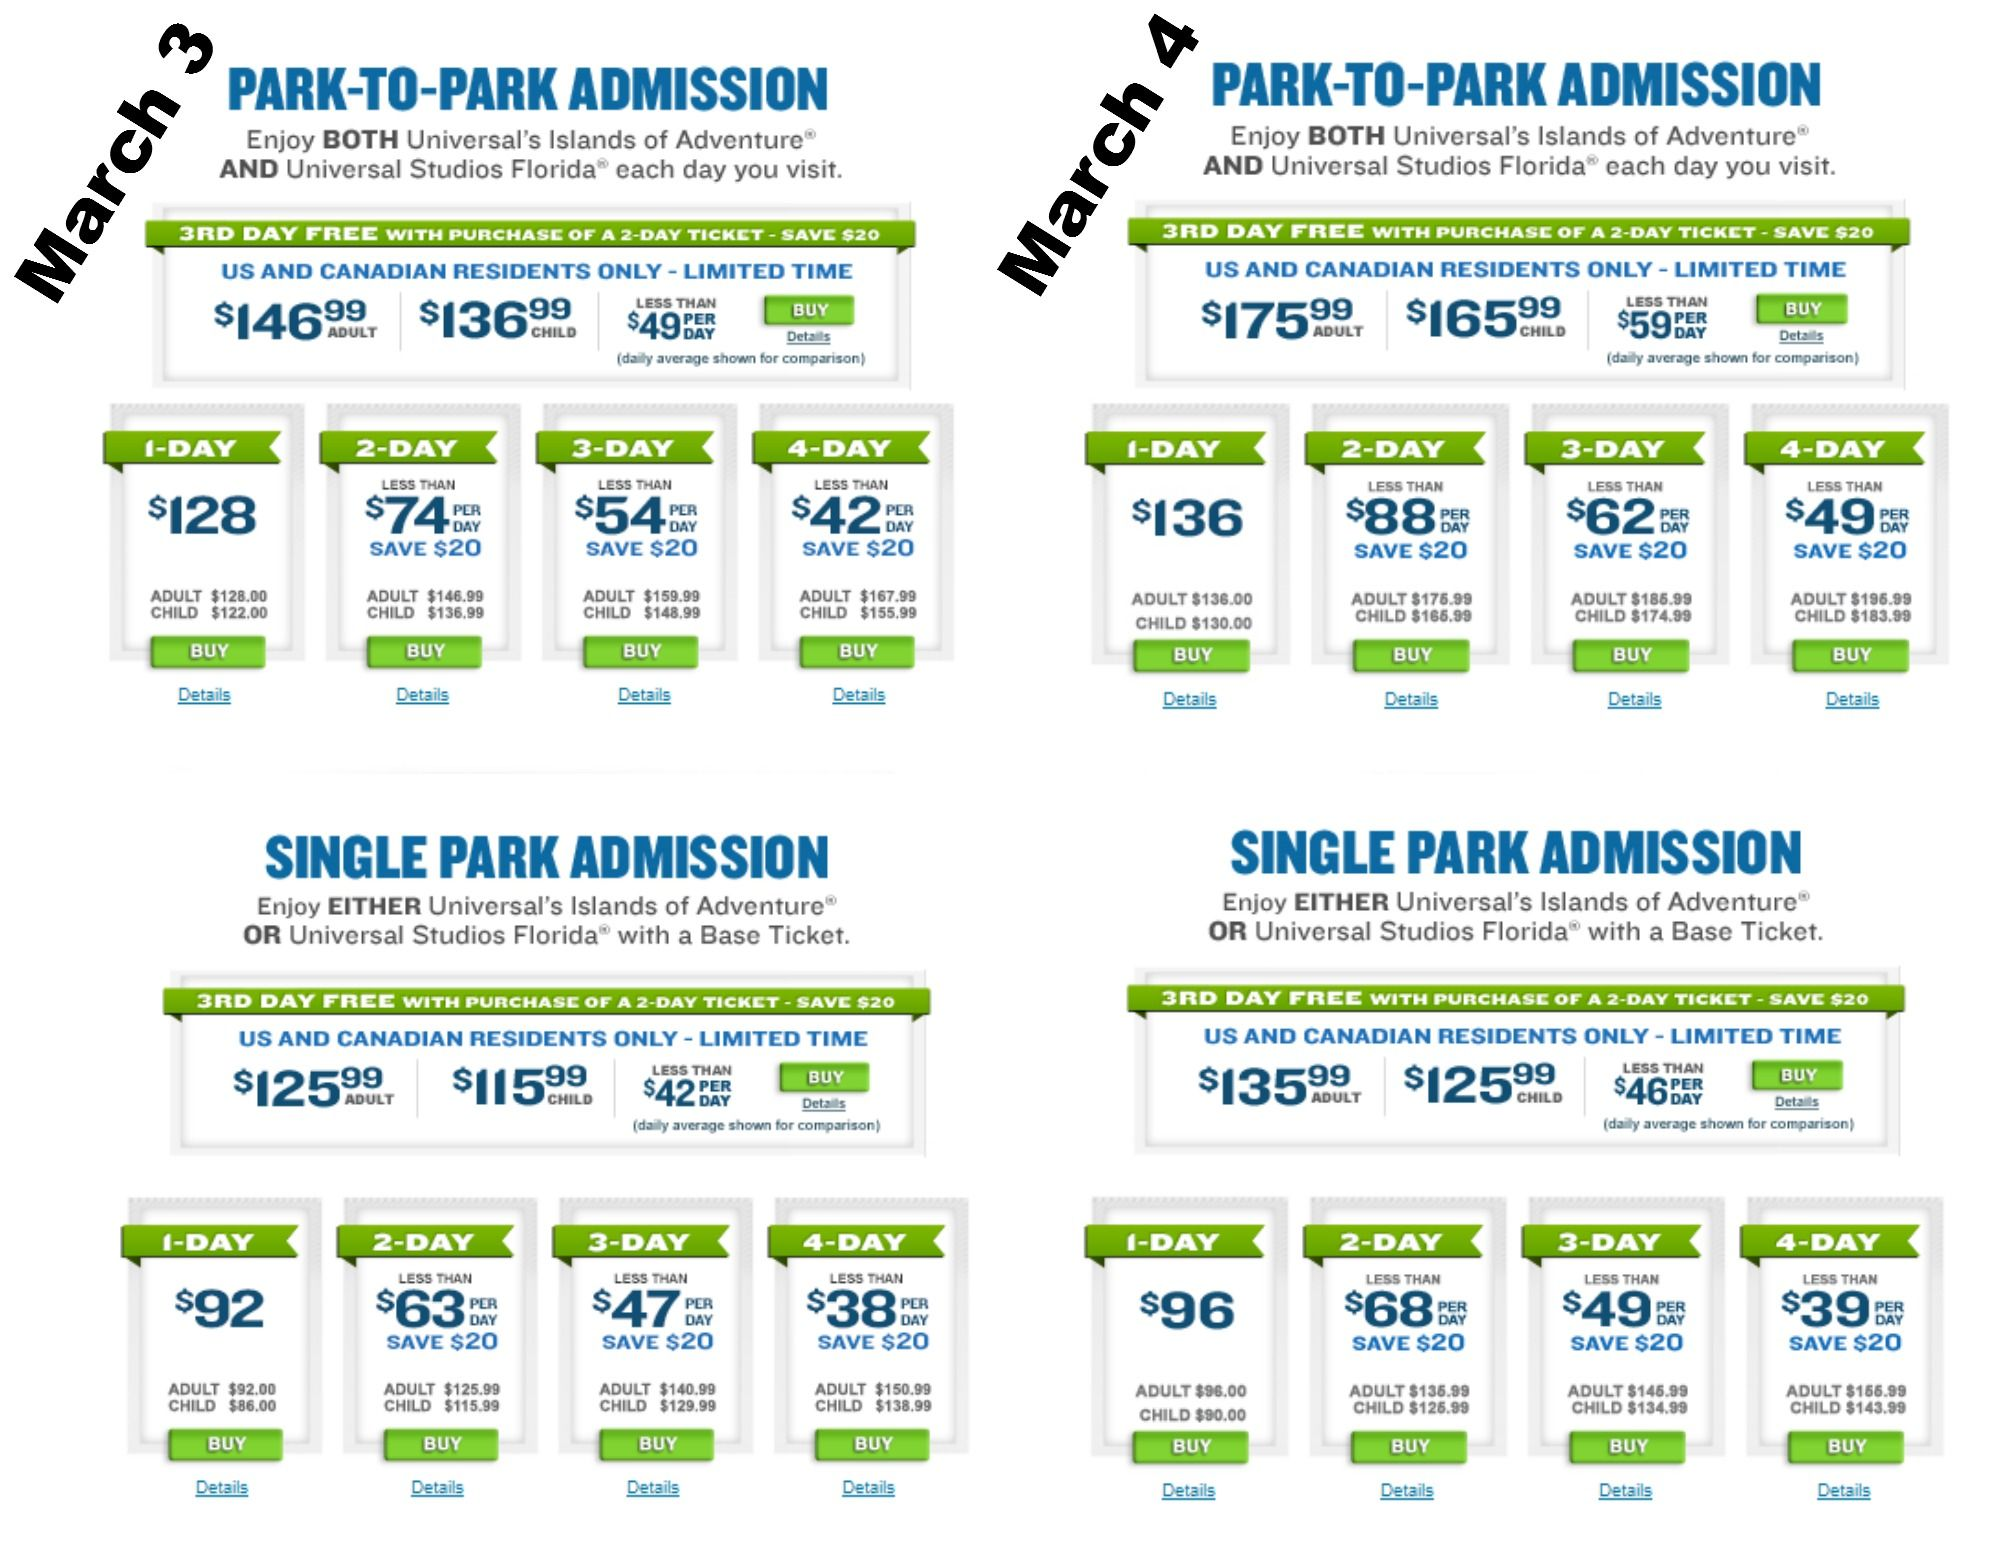 Universal S Online Ticket Prices Increased As Of March 4 2014 Most Notably A 2 Universal Islands Of Adventure Universal Studios Florida Islands Of Adventure